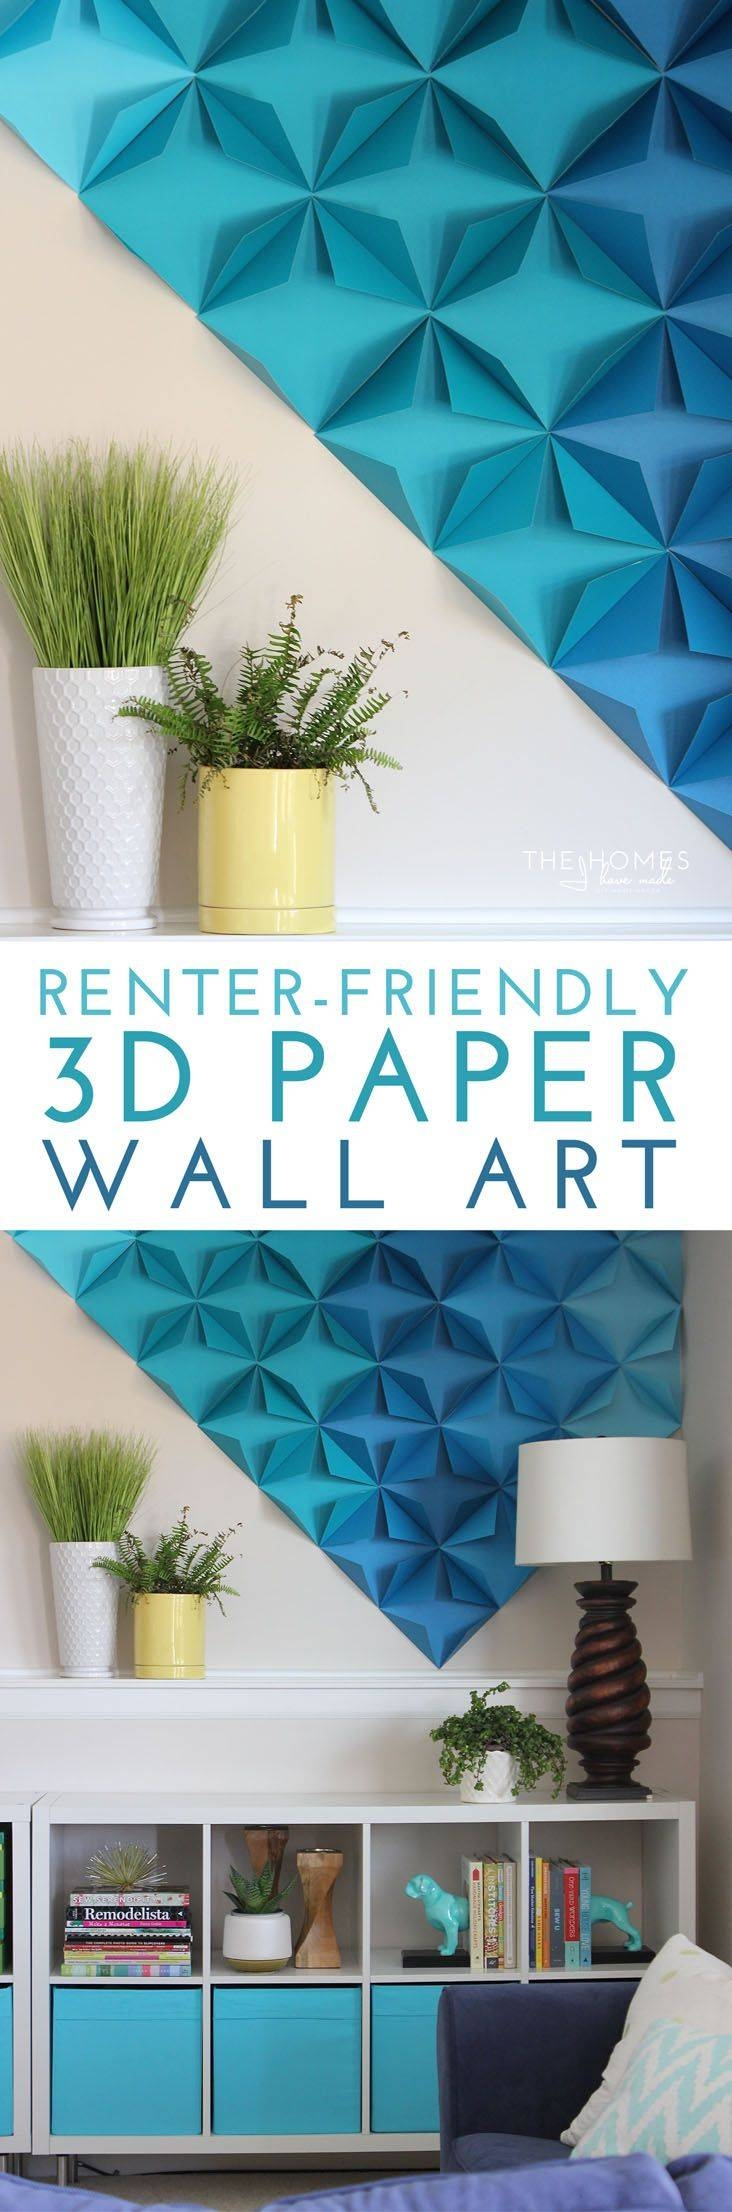 25+ Unique 3D Wall Art Ideas On Pinterest | Butterfly Wall, Diy Regarding Most Recent White Birds 3D Wall Art (View 1 of 20)